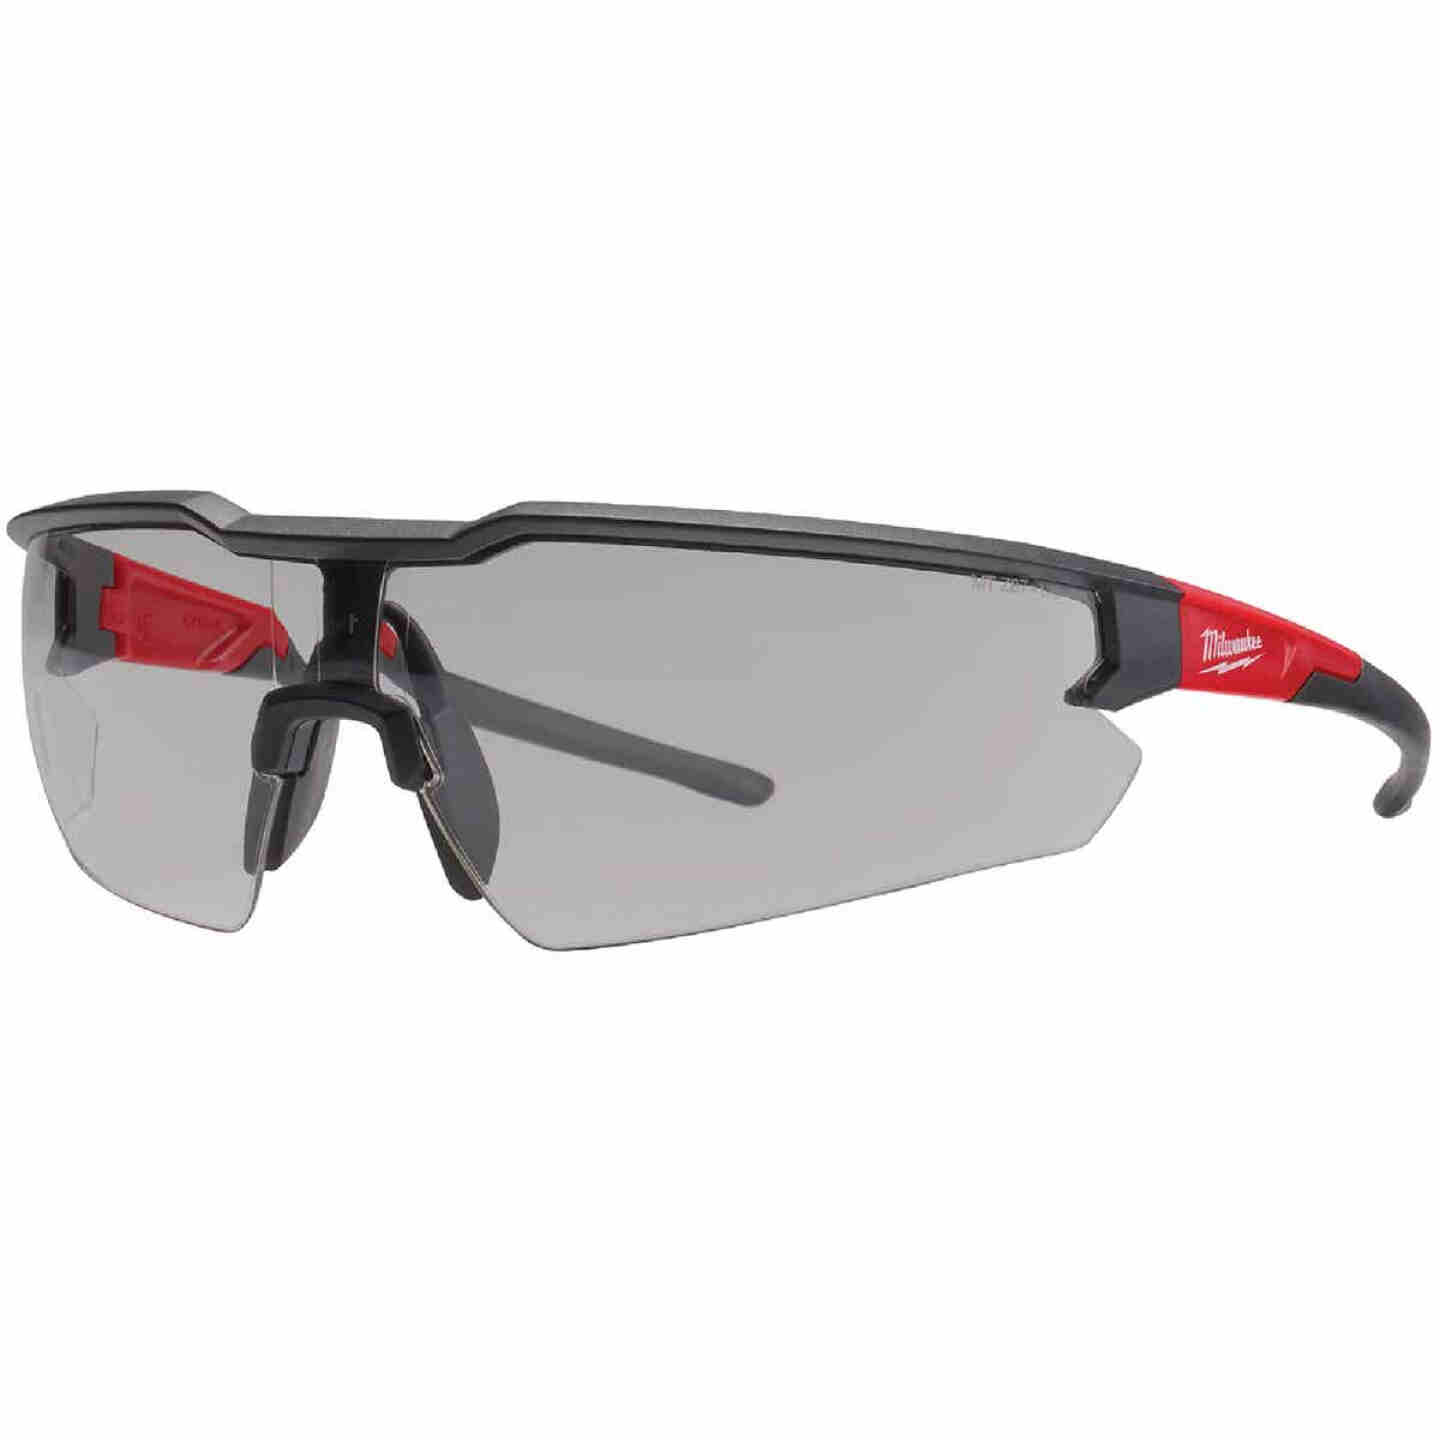 Milwaukee Red & Black Frame Safety Glasses with Gray Anti-Scratch Lenses Image 1